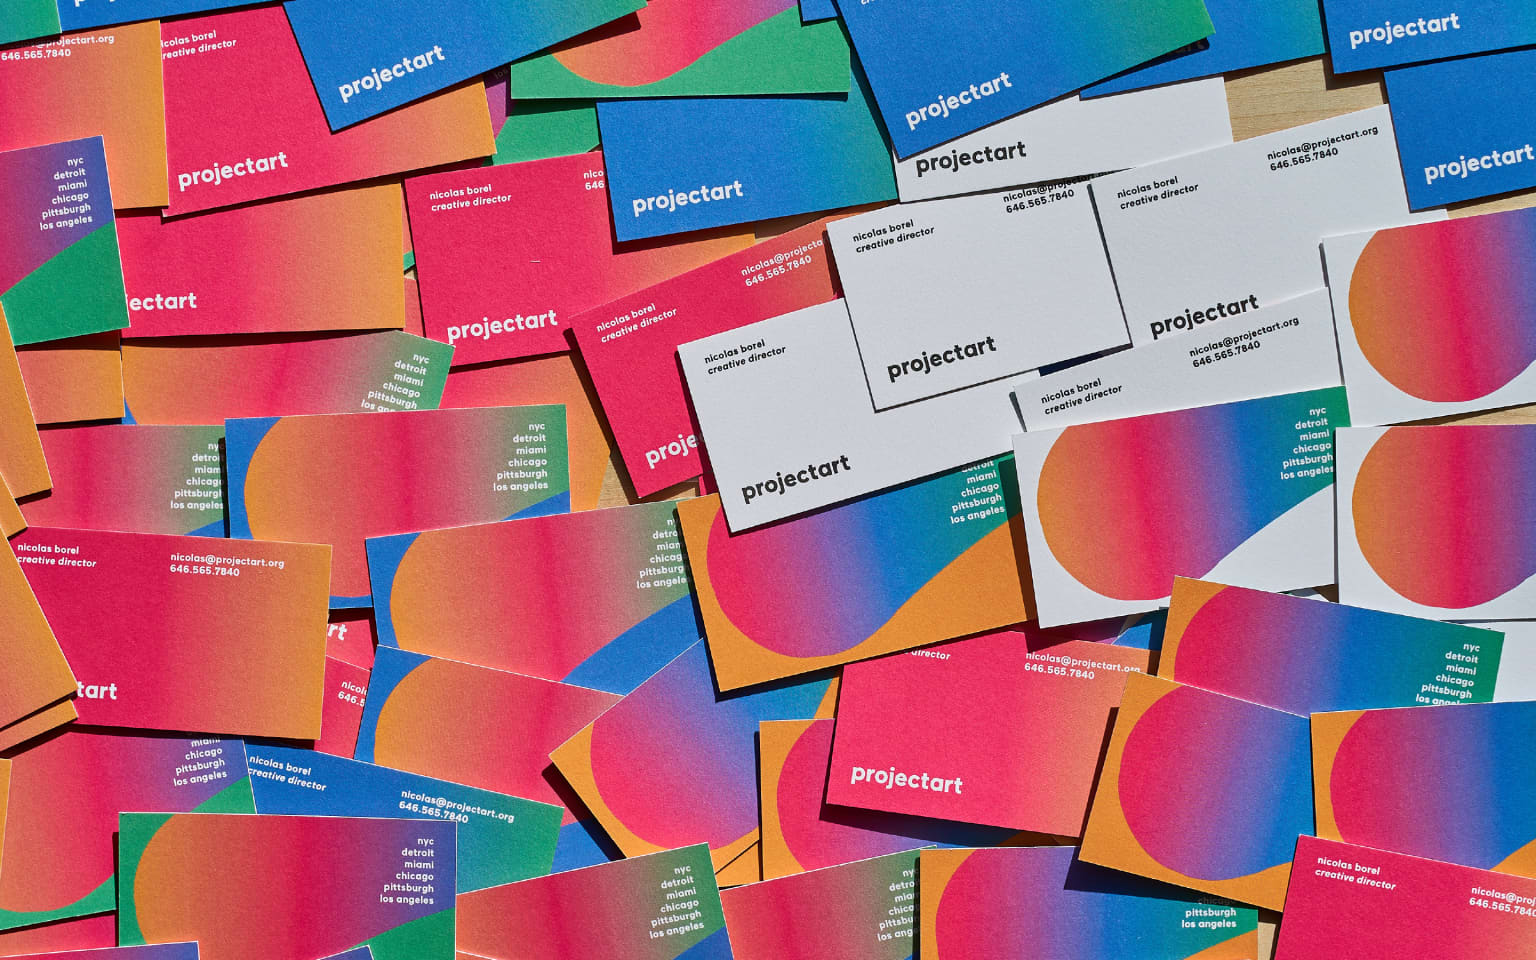 ProjectArt; identity design & creative direction